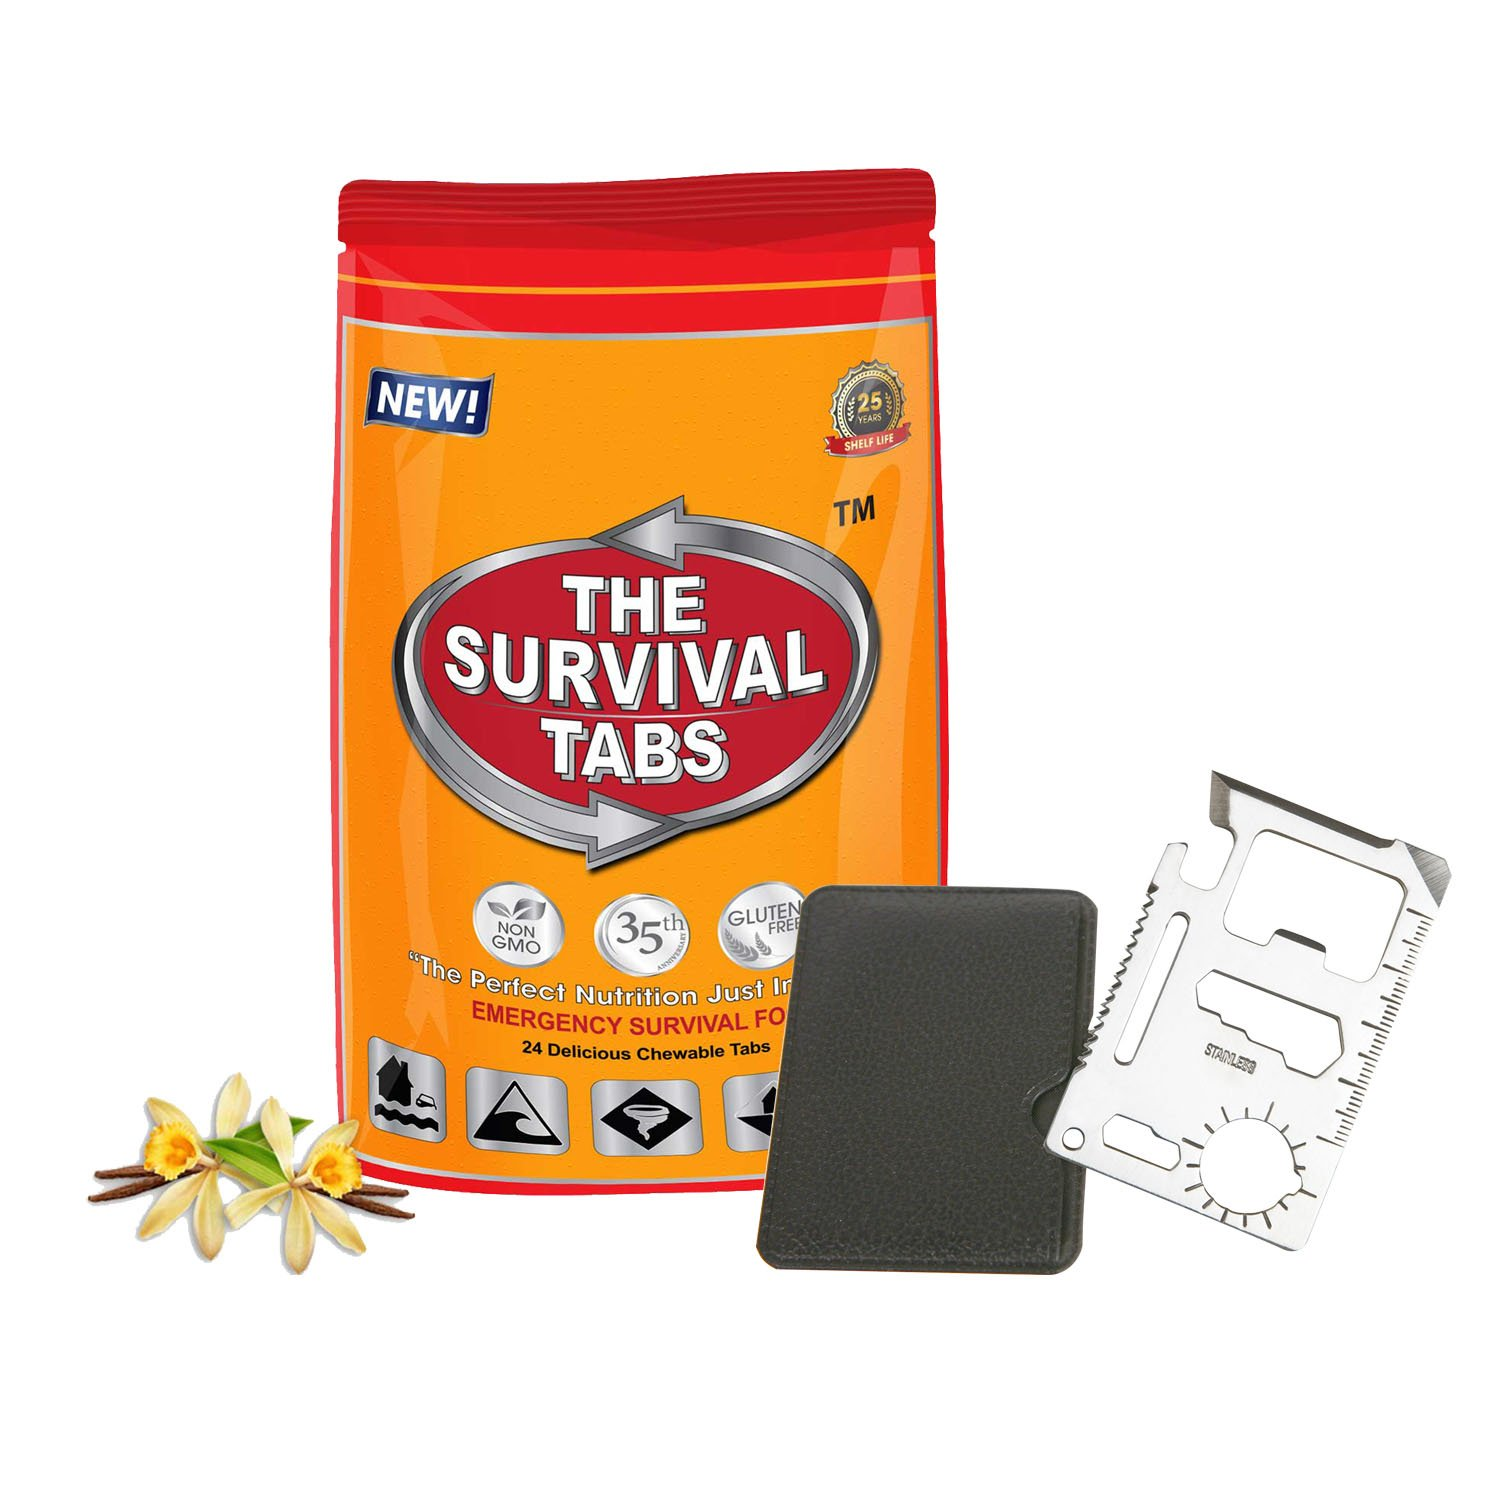 11 in1 Multi Tools Hunting Survival Camping Pocket Military Credit Card Knife + Survival Meal Ration 2-Day supply 24 tabs Ultimate Bugout Food 25 Years shelf life Gluten Free and Non-GMO - Vanilla Flavor